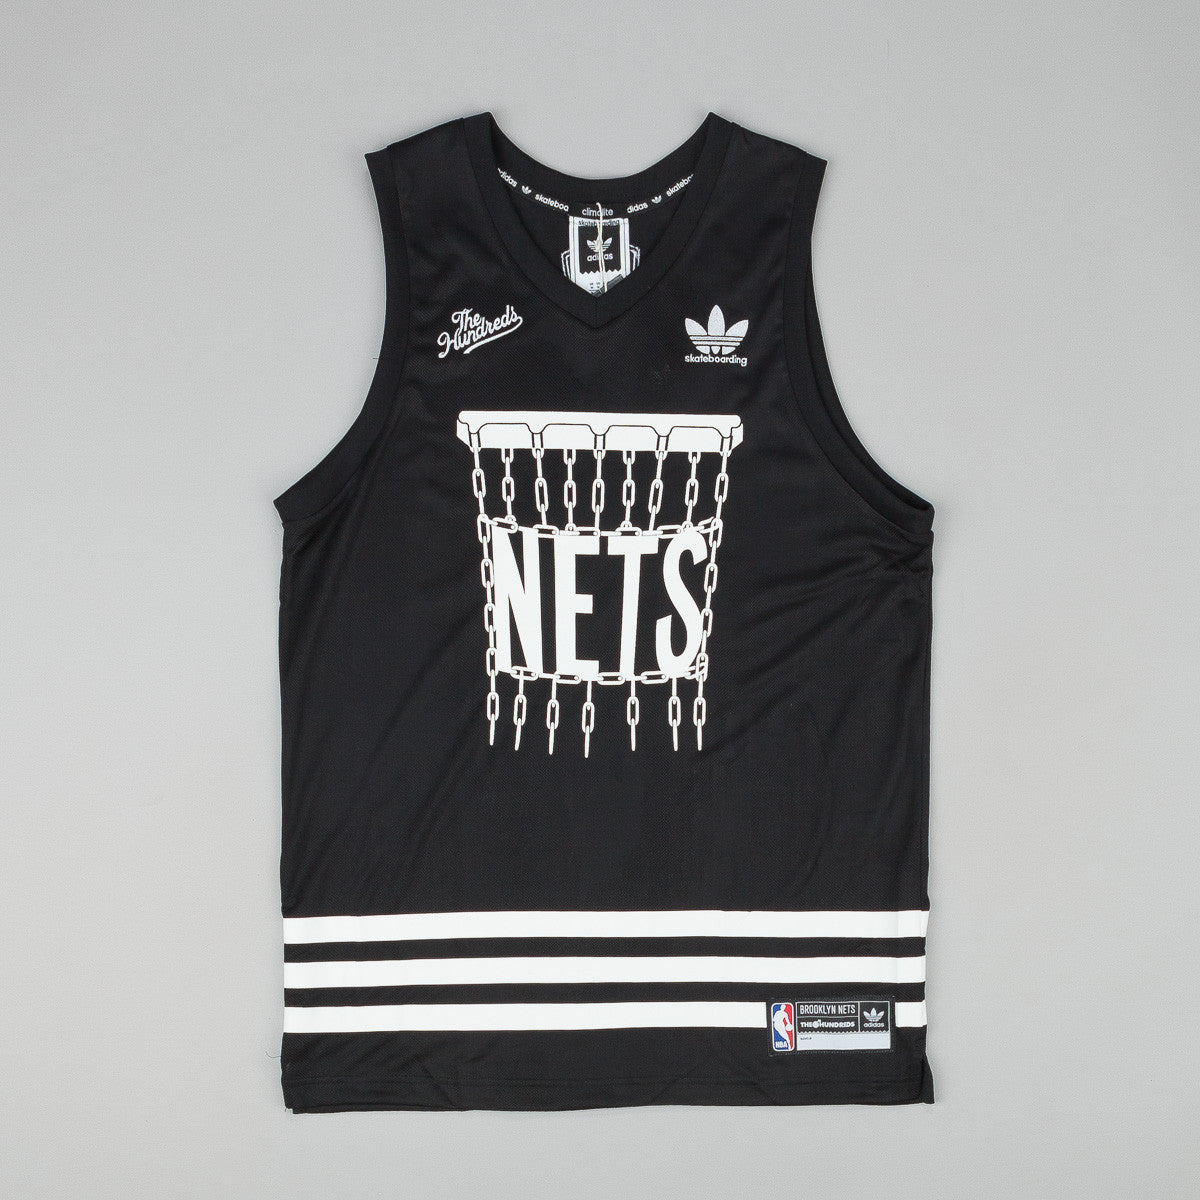 Adidas x NBA x The Hundreds NY Jersey